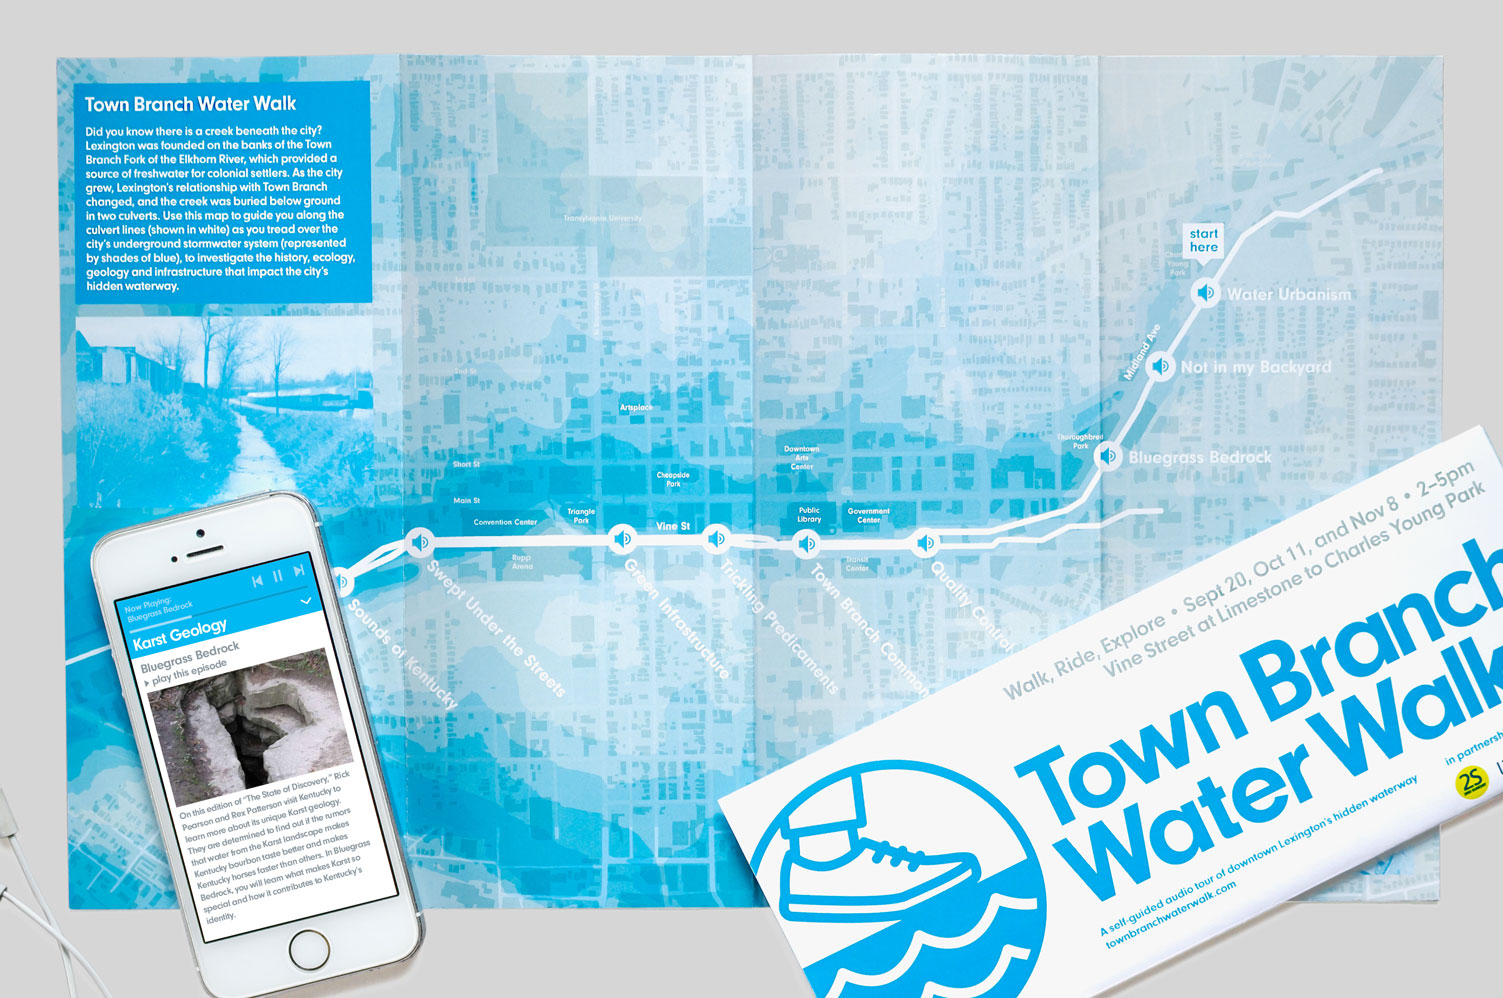 Town Branch Water Walk - MTWTF